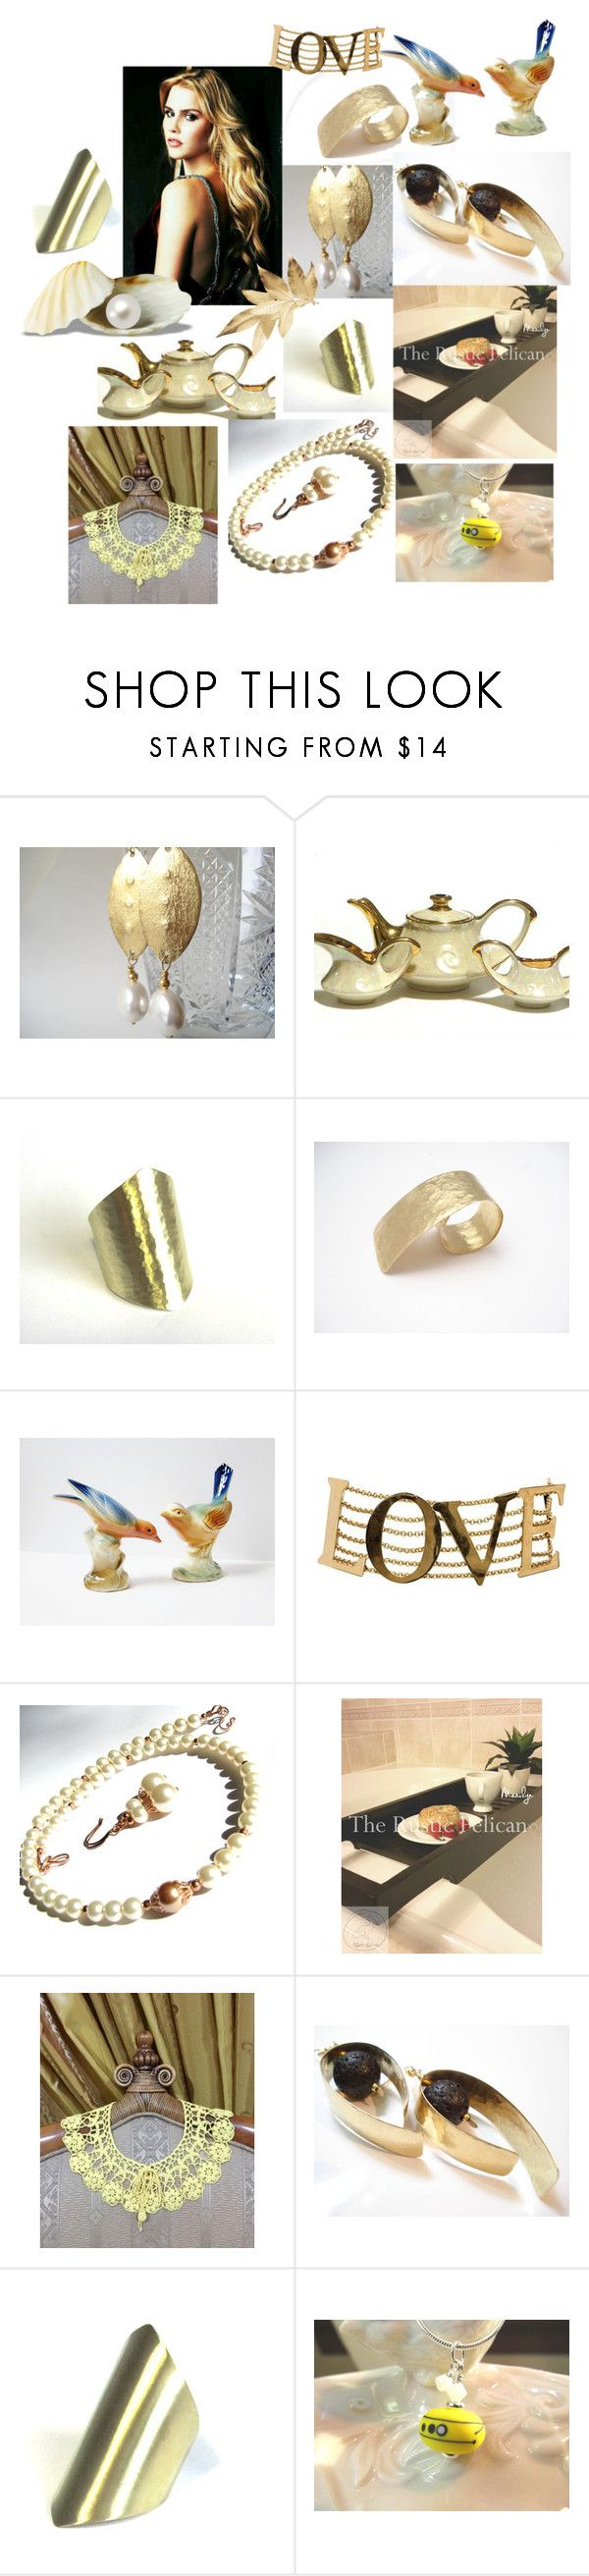 Golden Touch on Etsy by anna-recycle on Polyvore featuring Anello, Dolce&Gabbana, modern, rustic and vintage